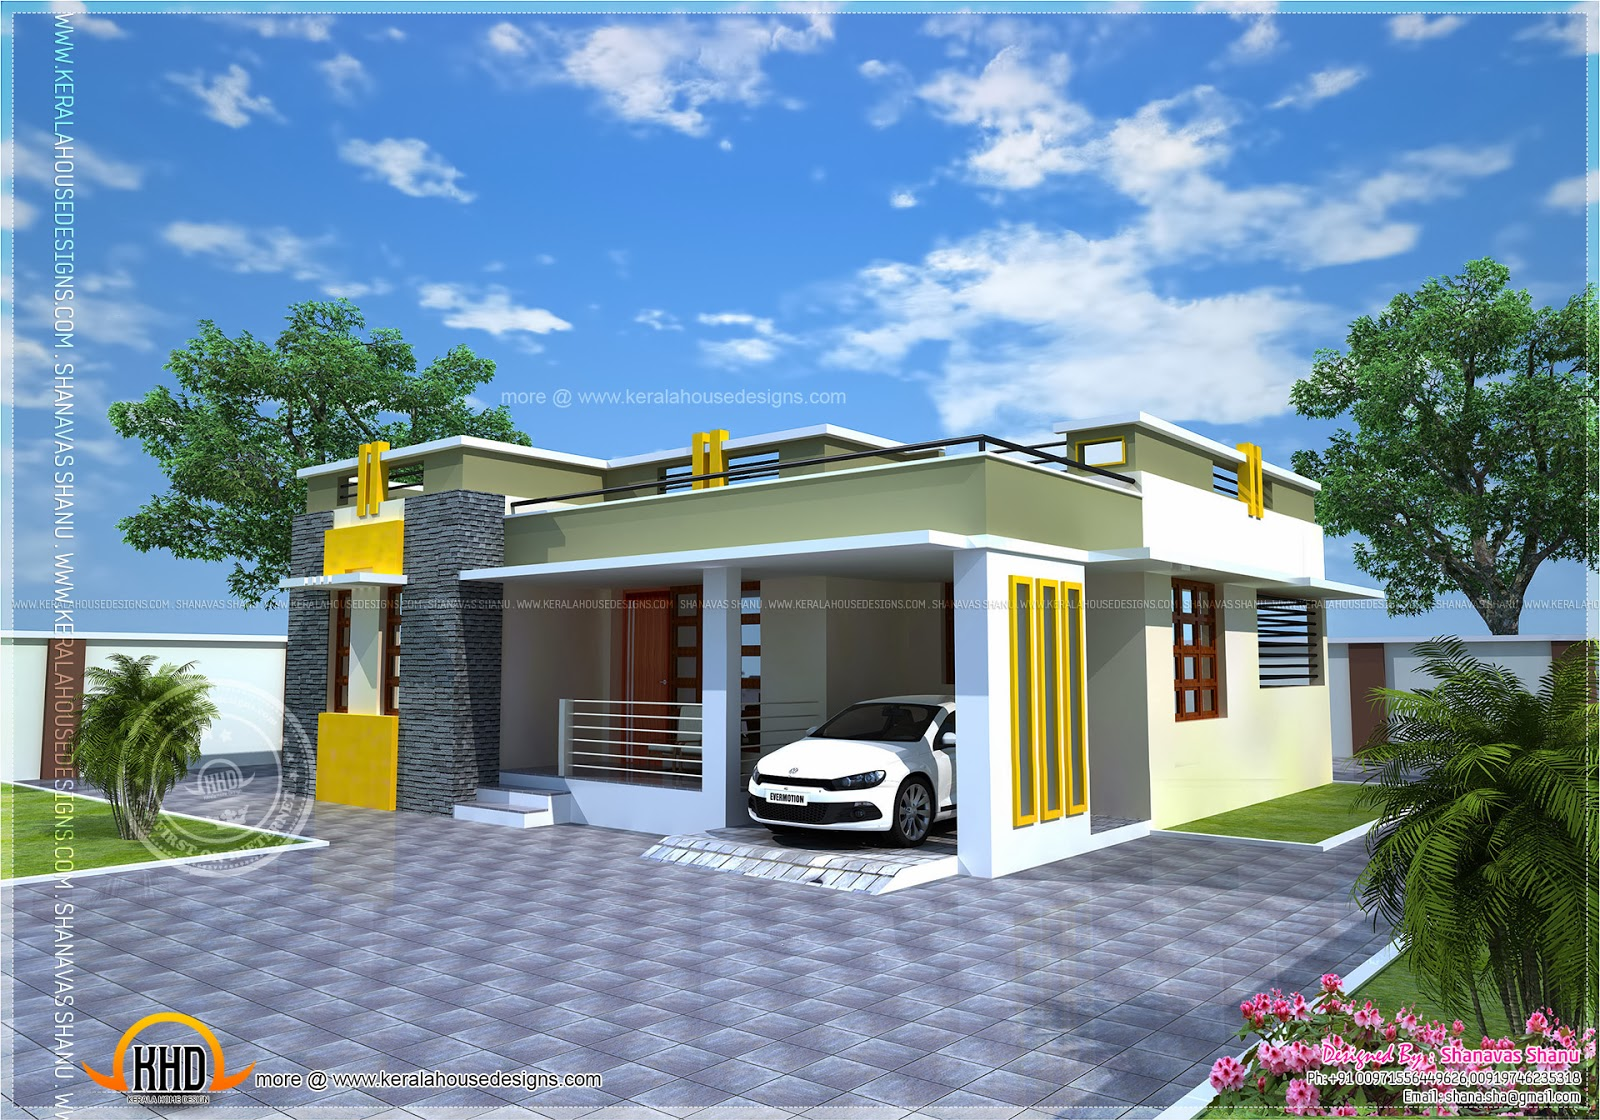 House plan of a small modern villa indian house plans for Small modern home plans